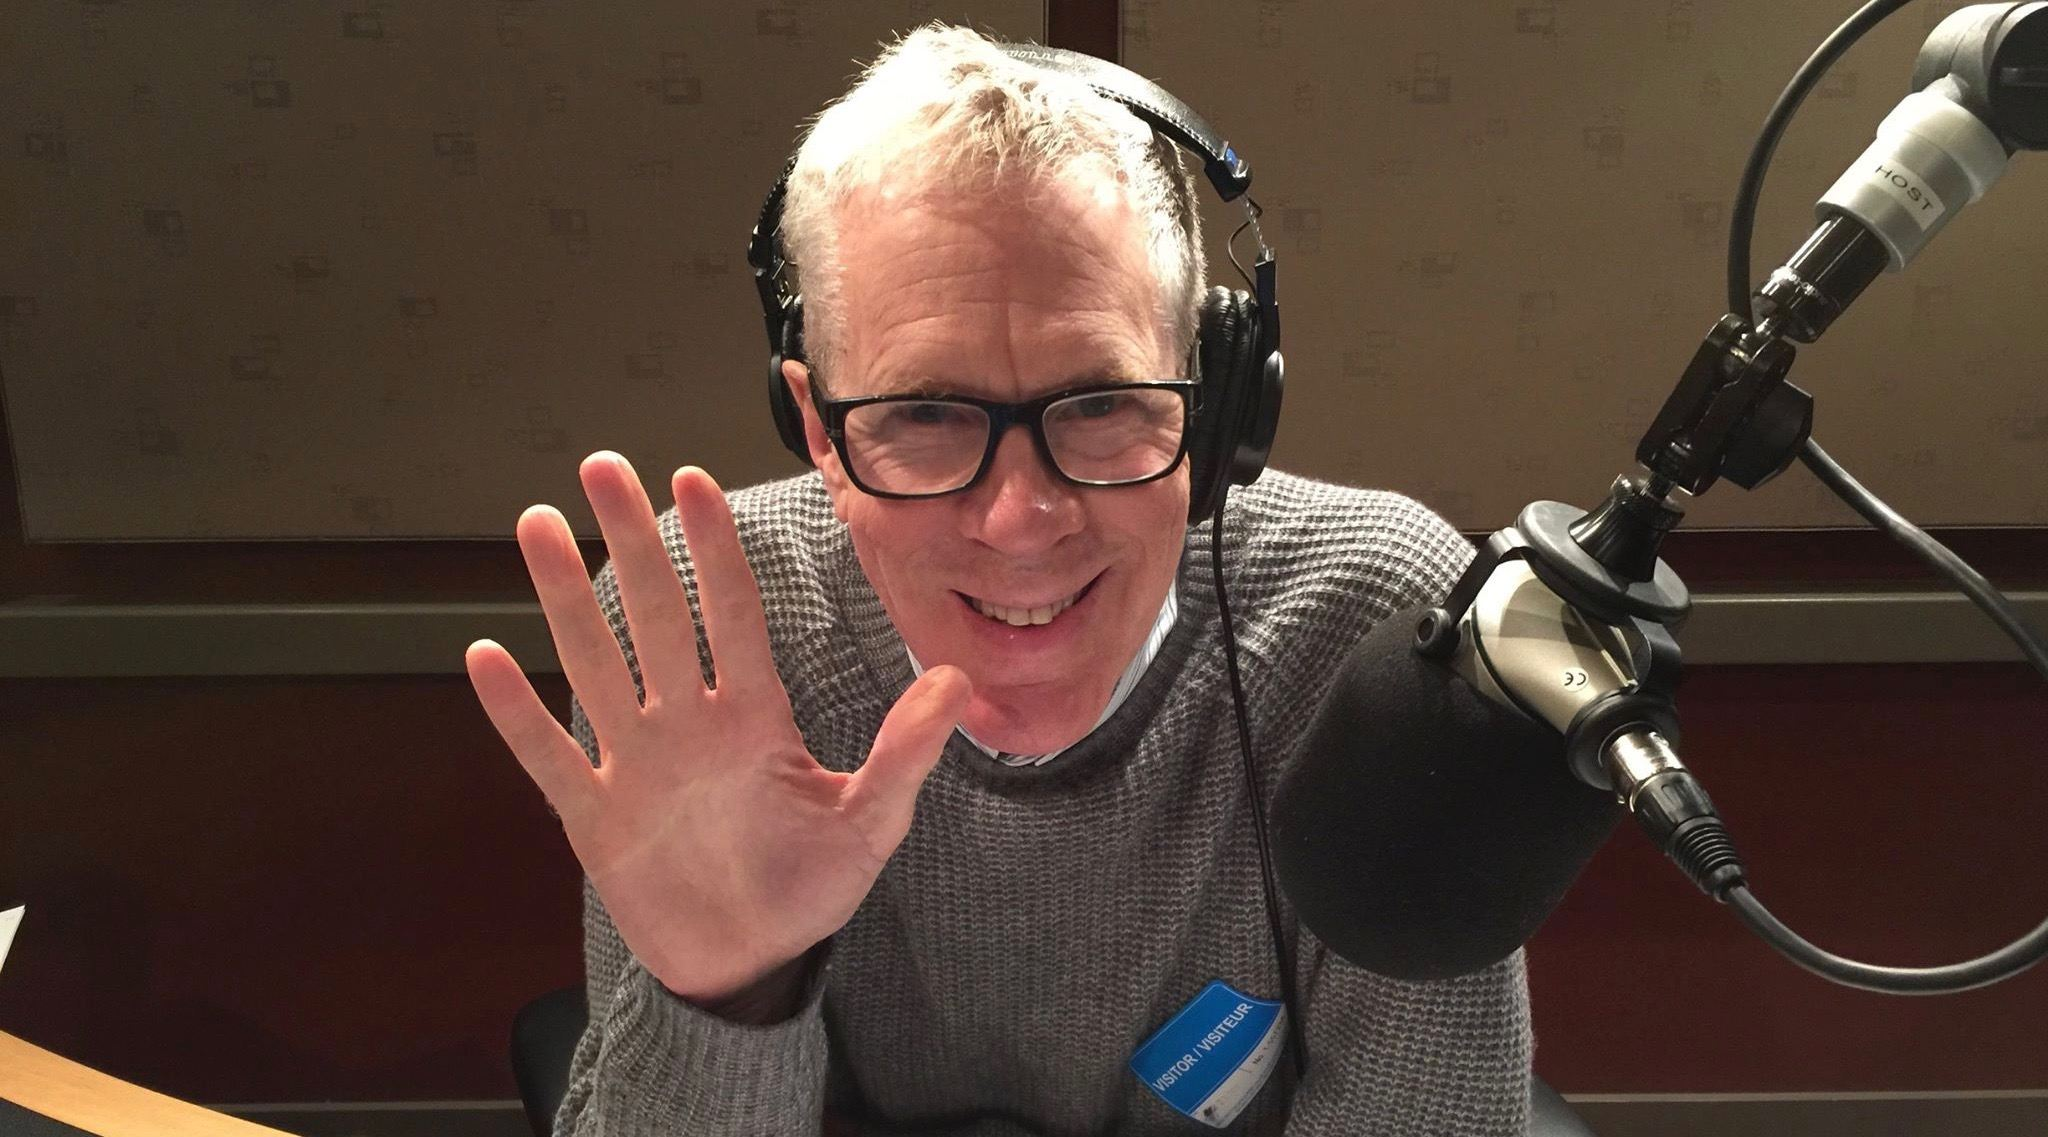 IMG STUART McLEAN, CBC Radio Host and Award-Winning Humorist